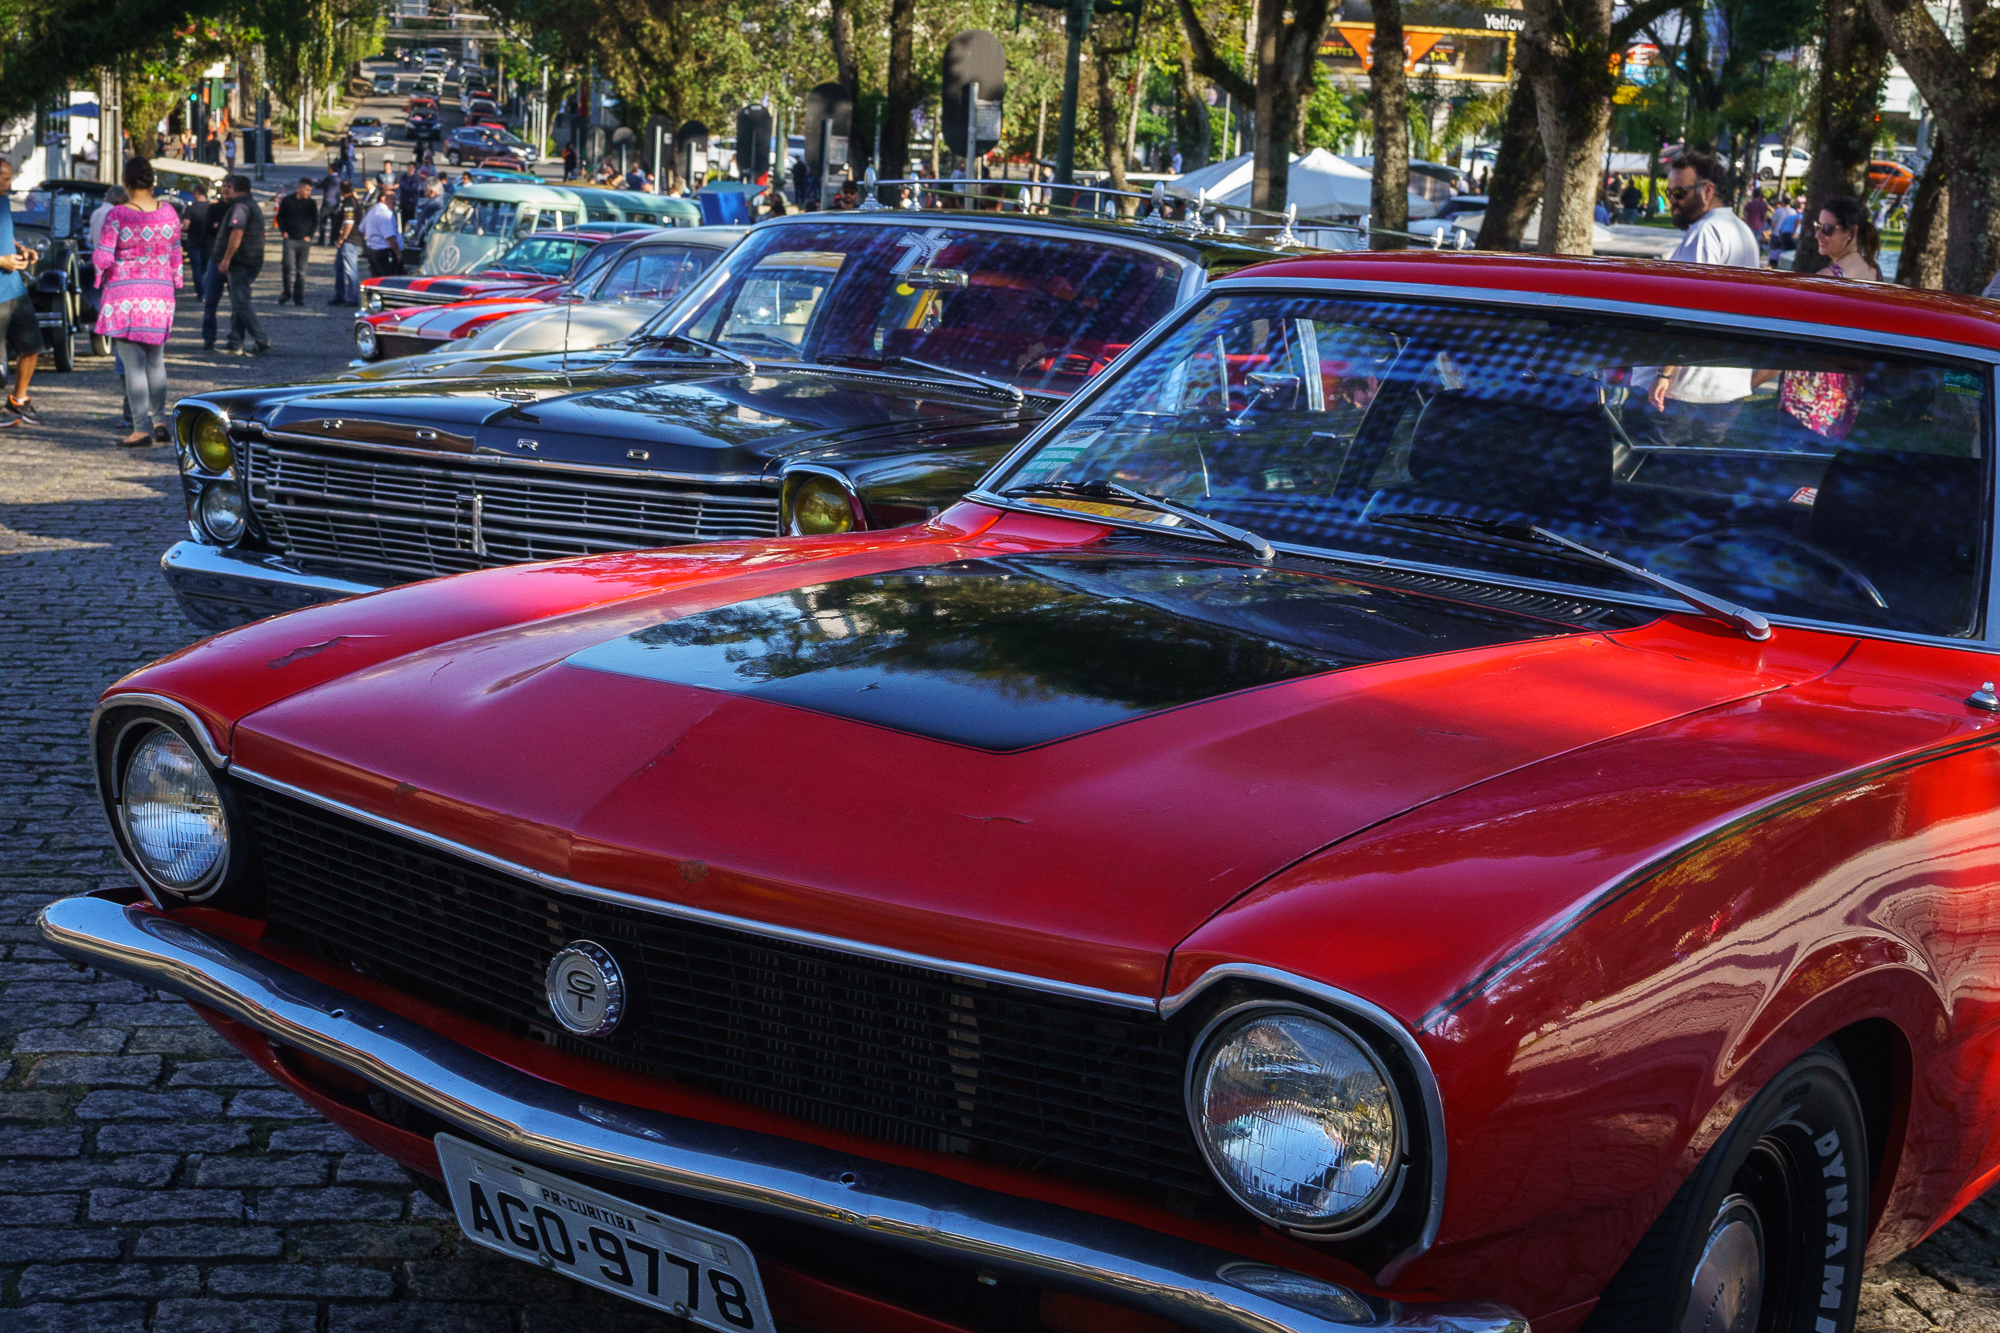 Ford Maverick in front of a row of cars